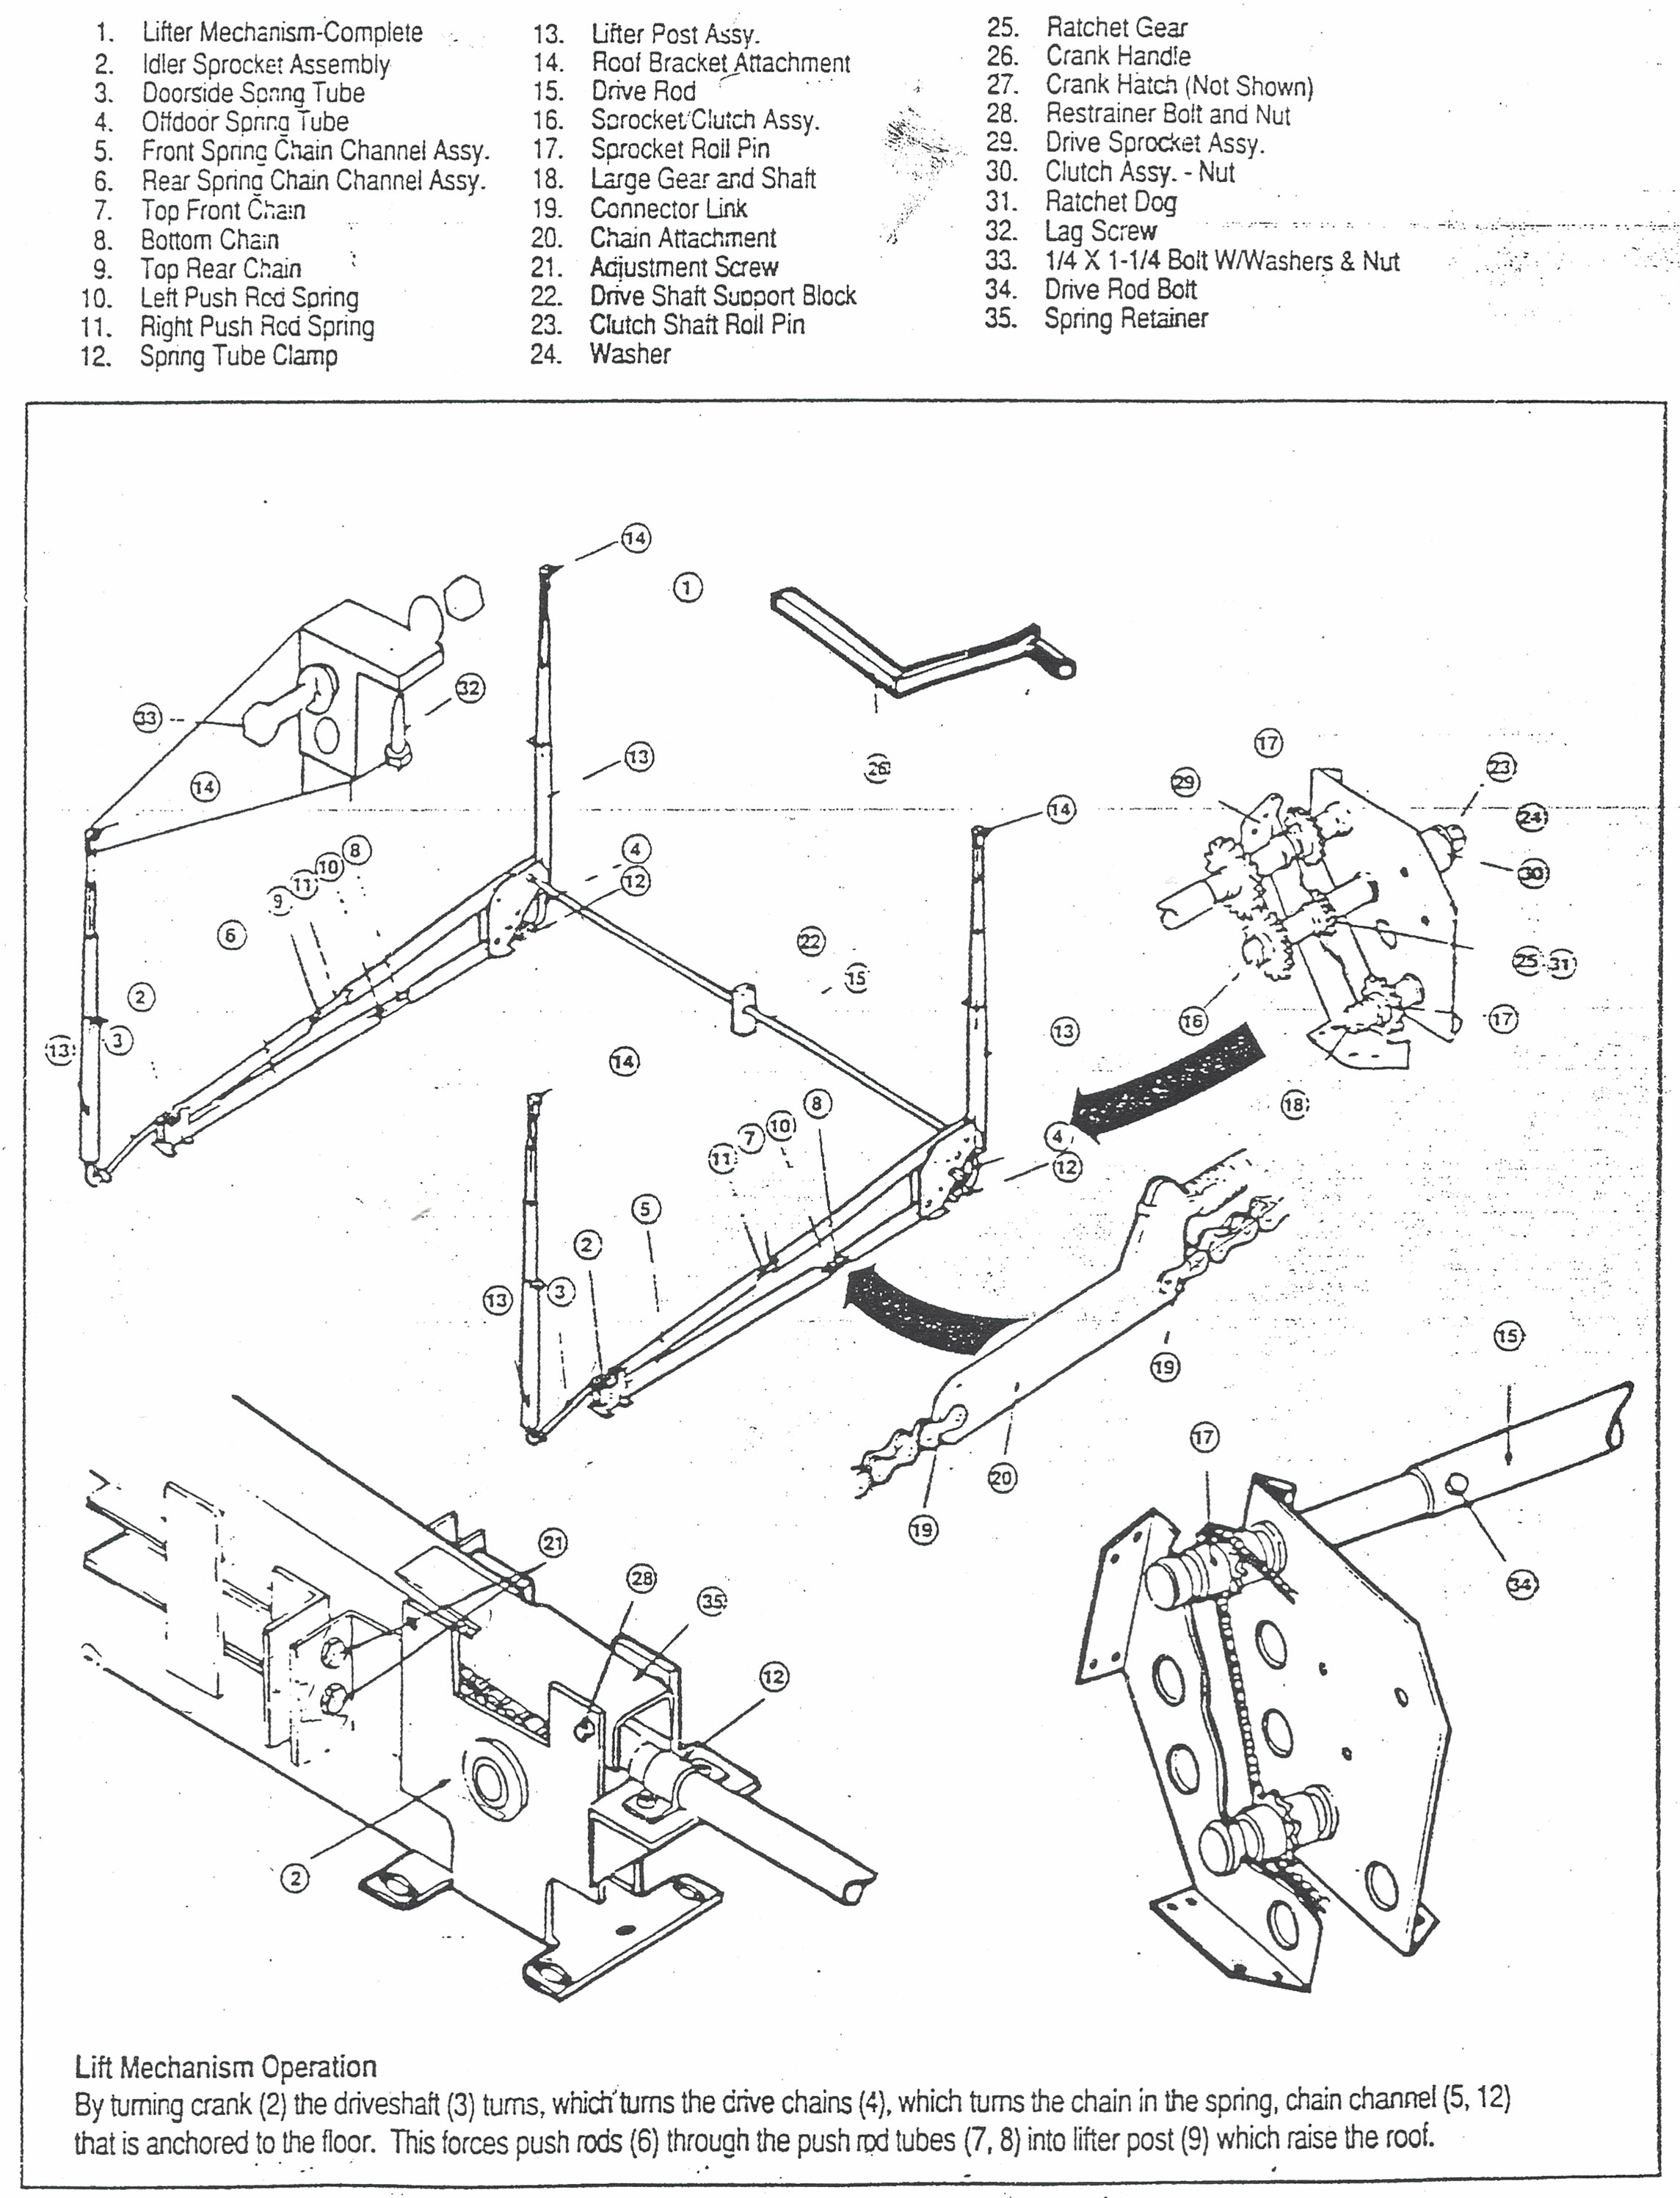 Omegahost also Wiring diagrams moreover Procraft 180 Bo Wiring Diagram also 1990 Prowler Wiring Diagram in addition Electrical Wiring Diagram Starcraft C Ers. on starcraft wiring harness diagram